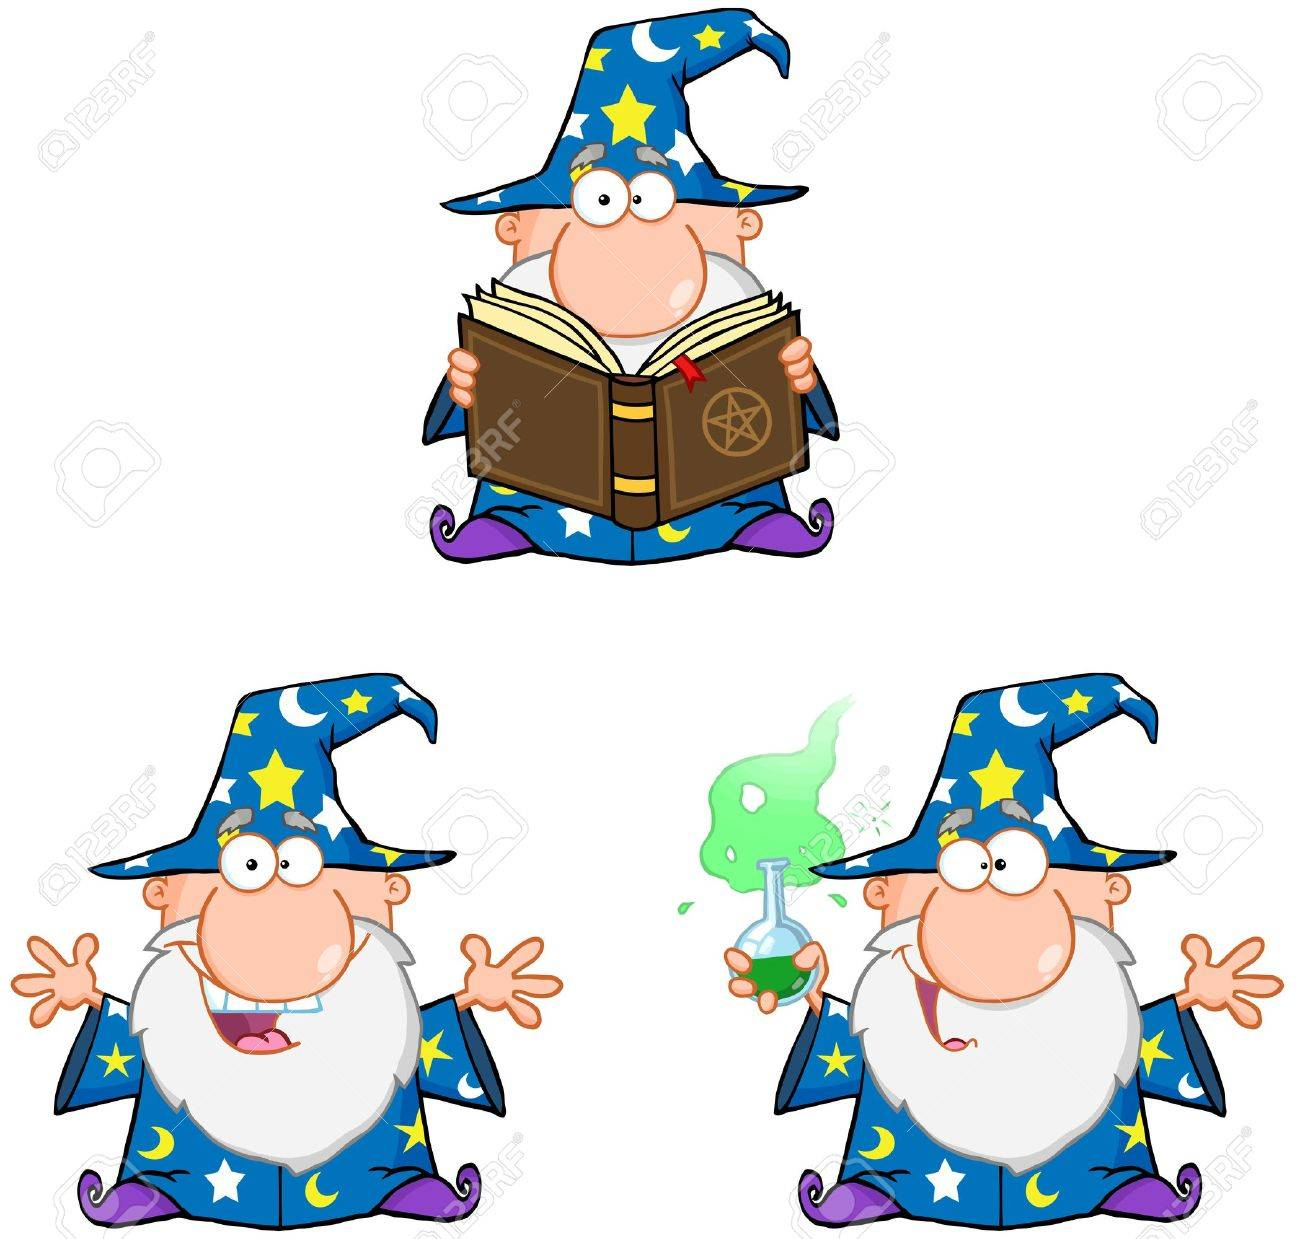 Wizard Cartoon Characters  Collection 2 Stock Vector - 18842639